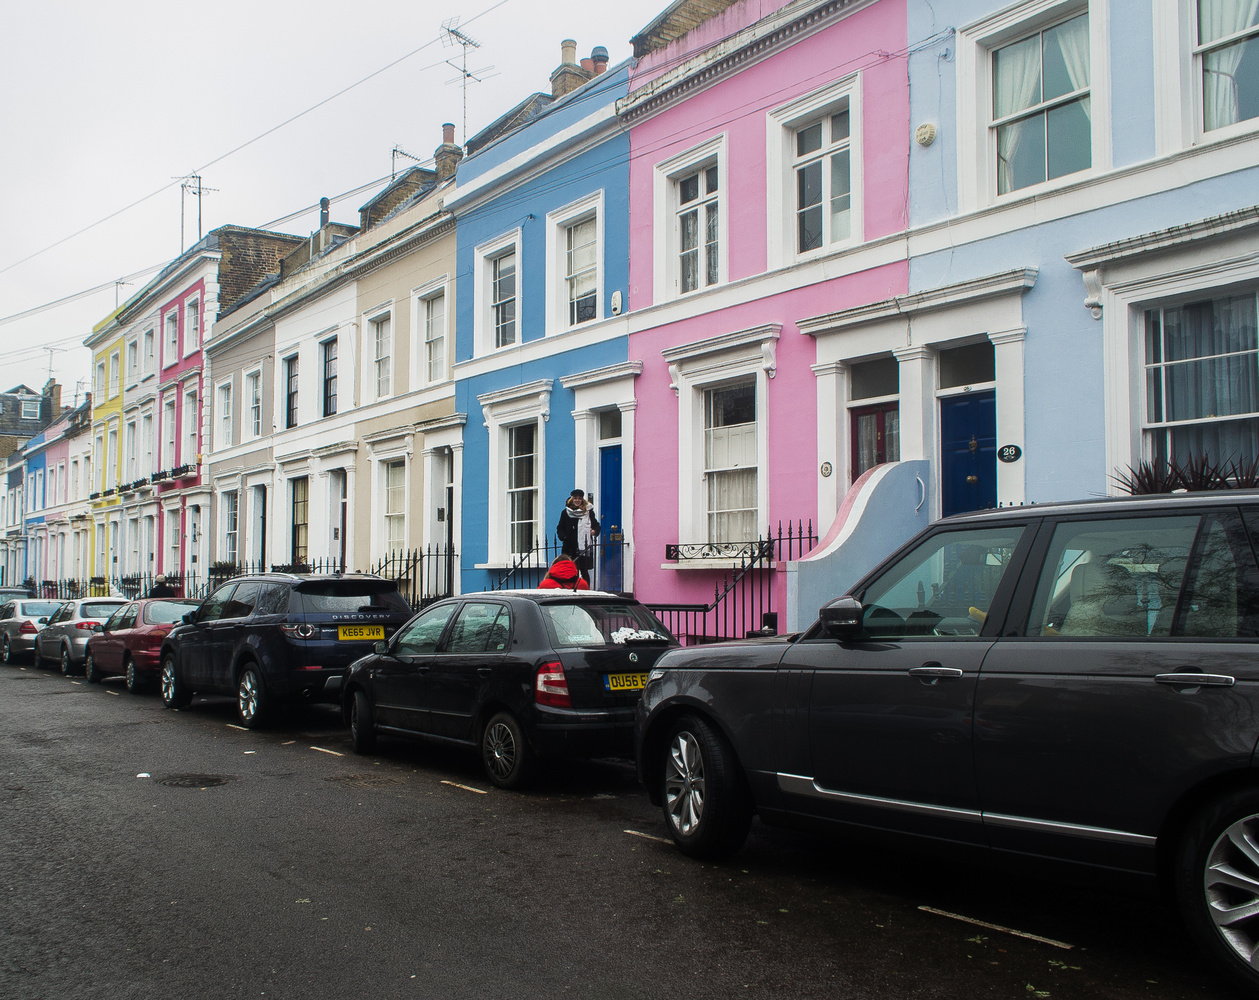 Notting Hill #4 by Tom Juggins